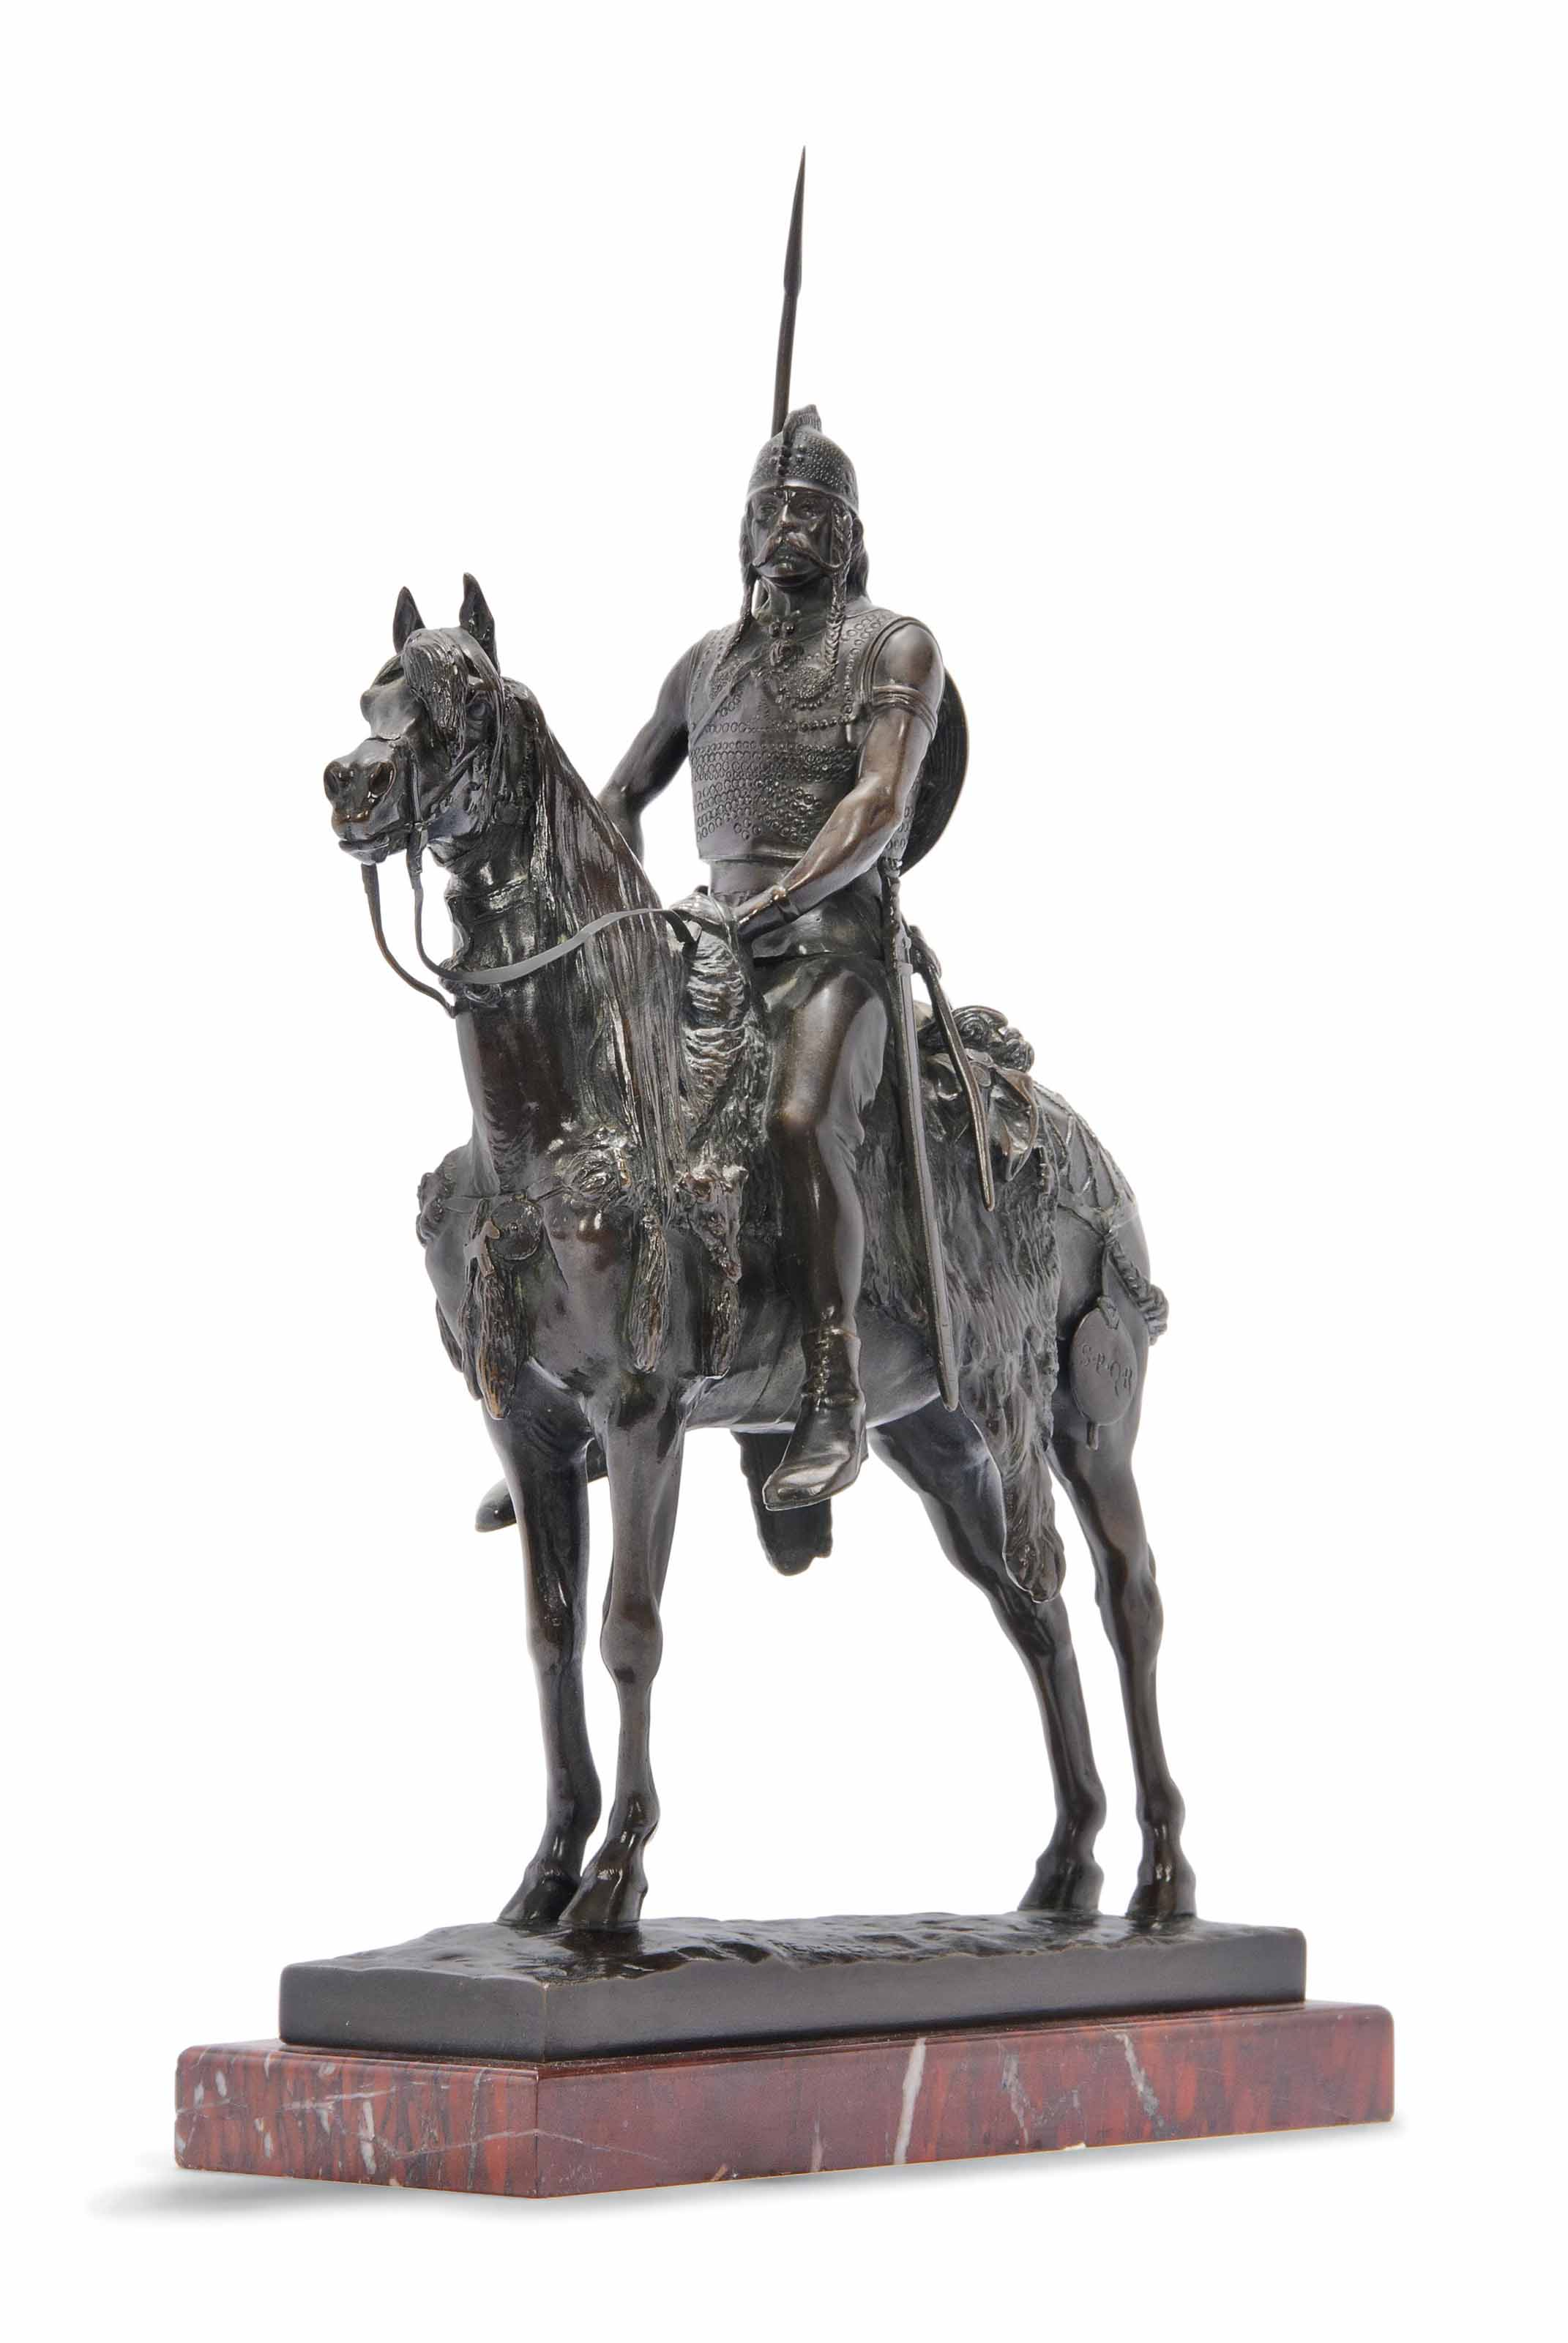 A FRENCH BRONZE EQUESTRIAN BRONZE OF THE GALLIC WARRIOR